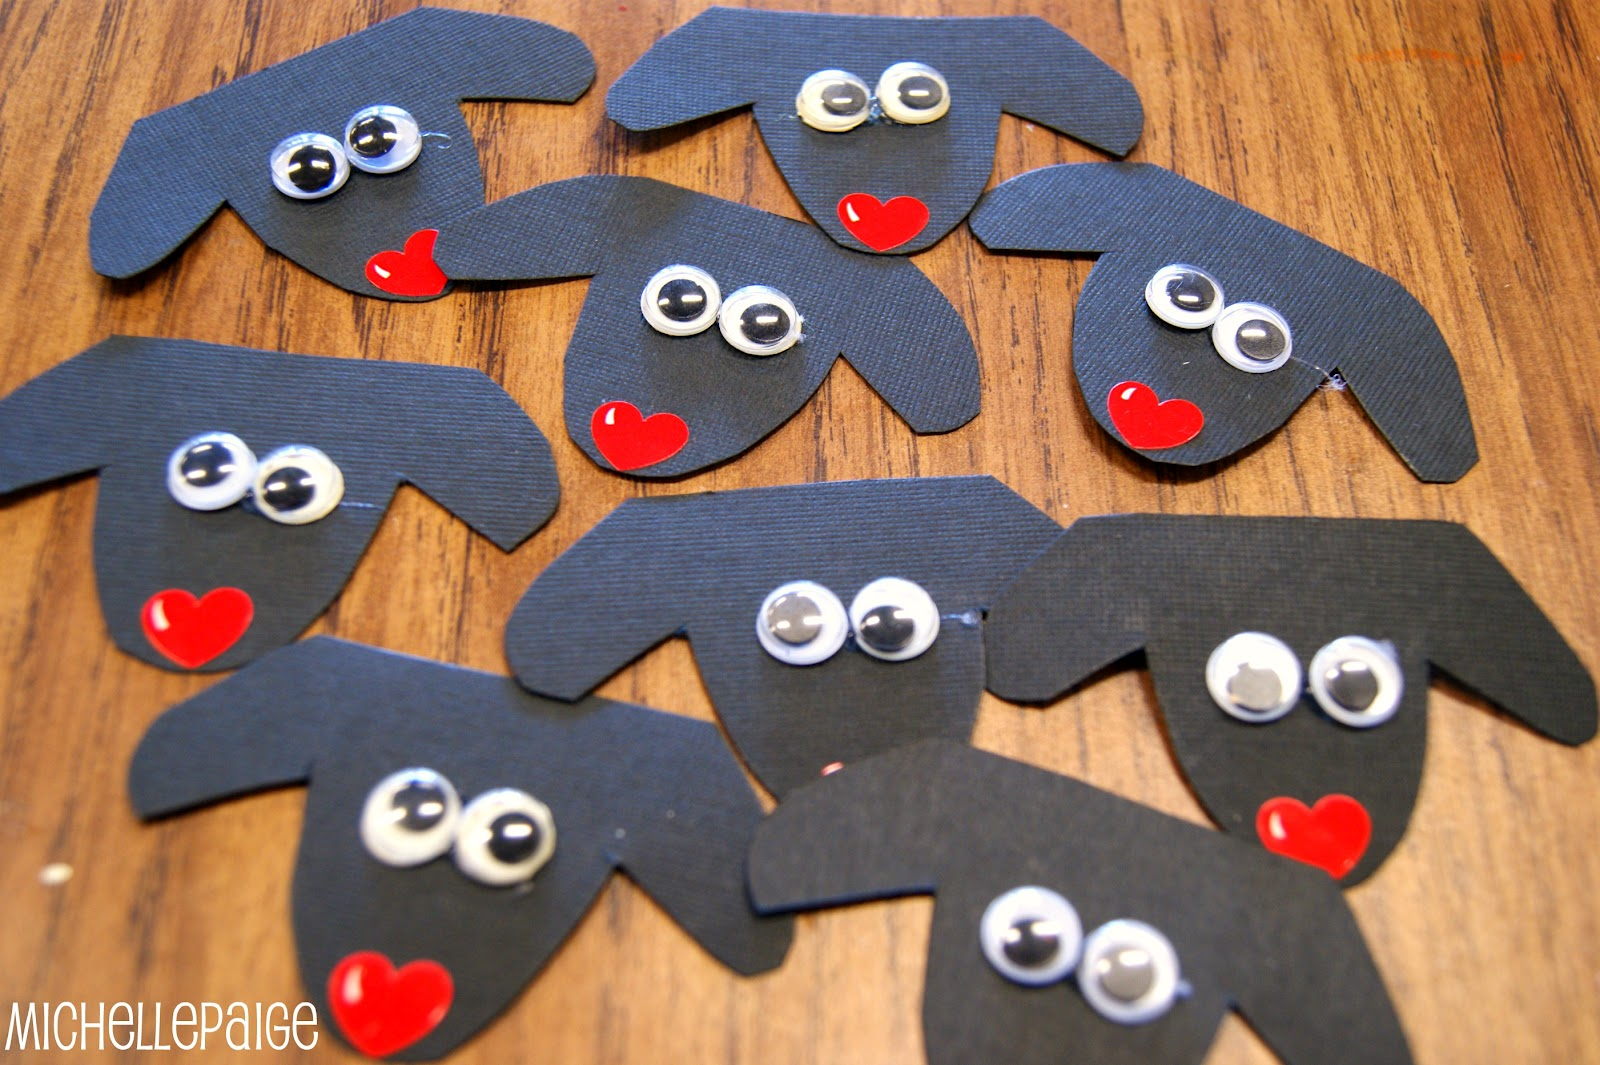 michelle paige blogs sunday craft for the parable of the